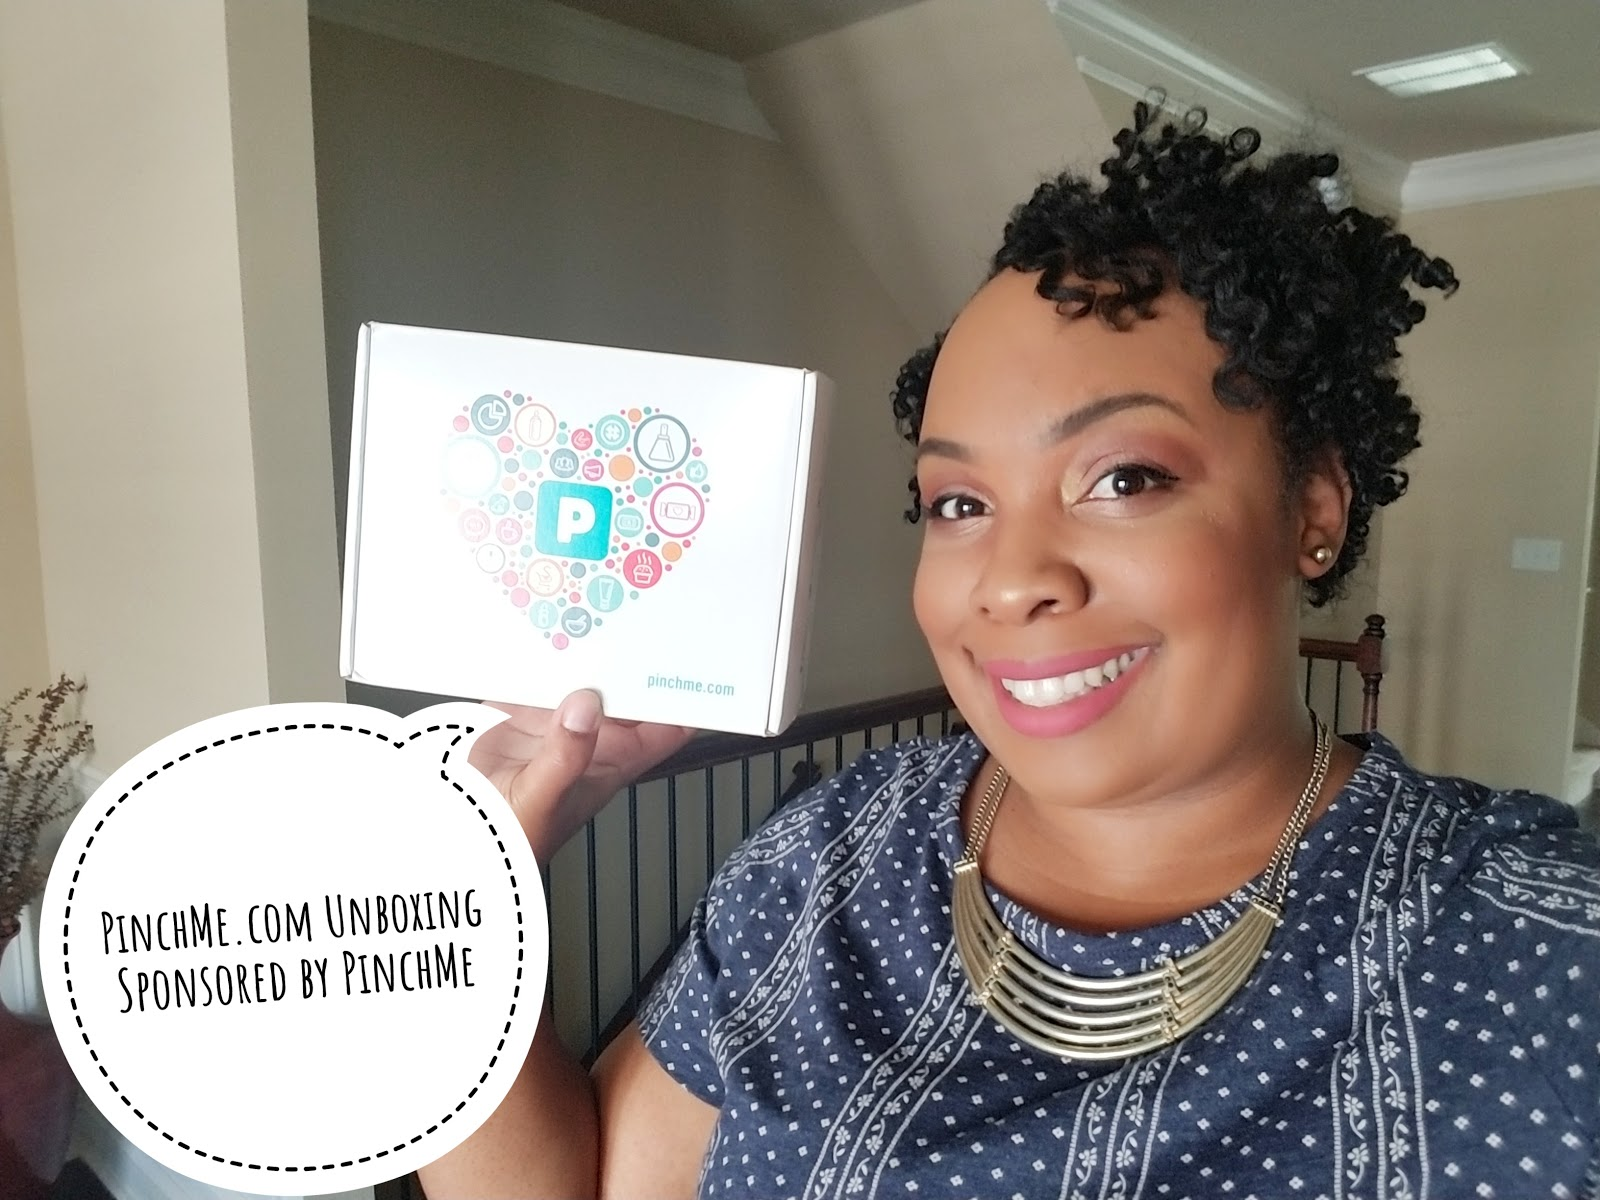 Get Free Samples in the Mail Free: My PINCHme Unboxing Video